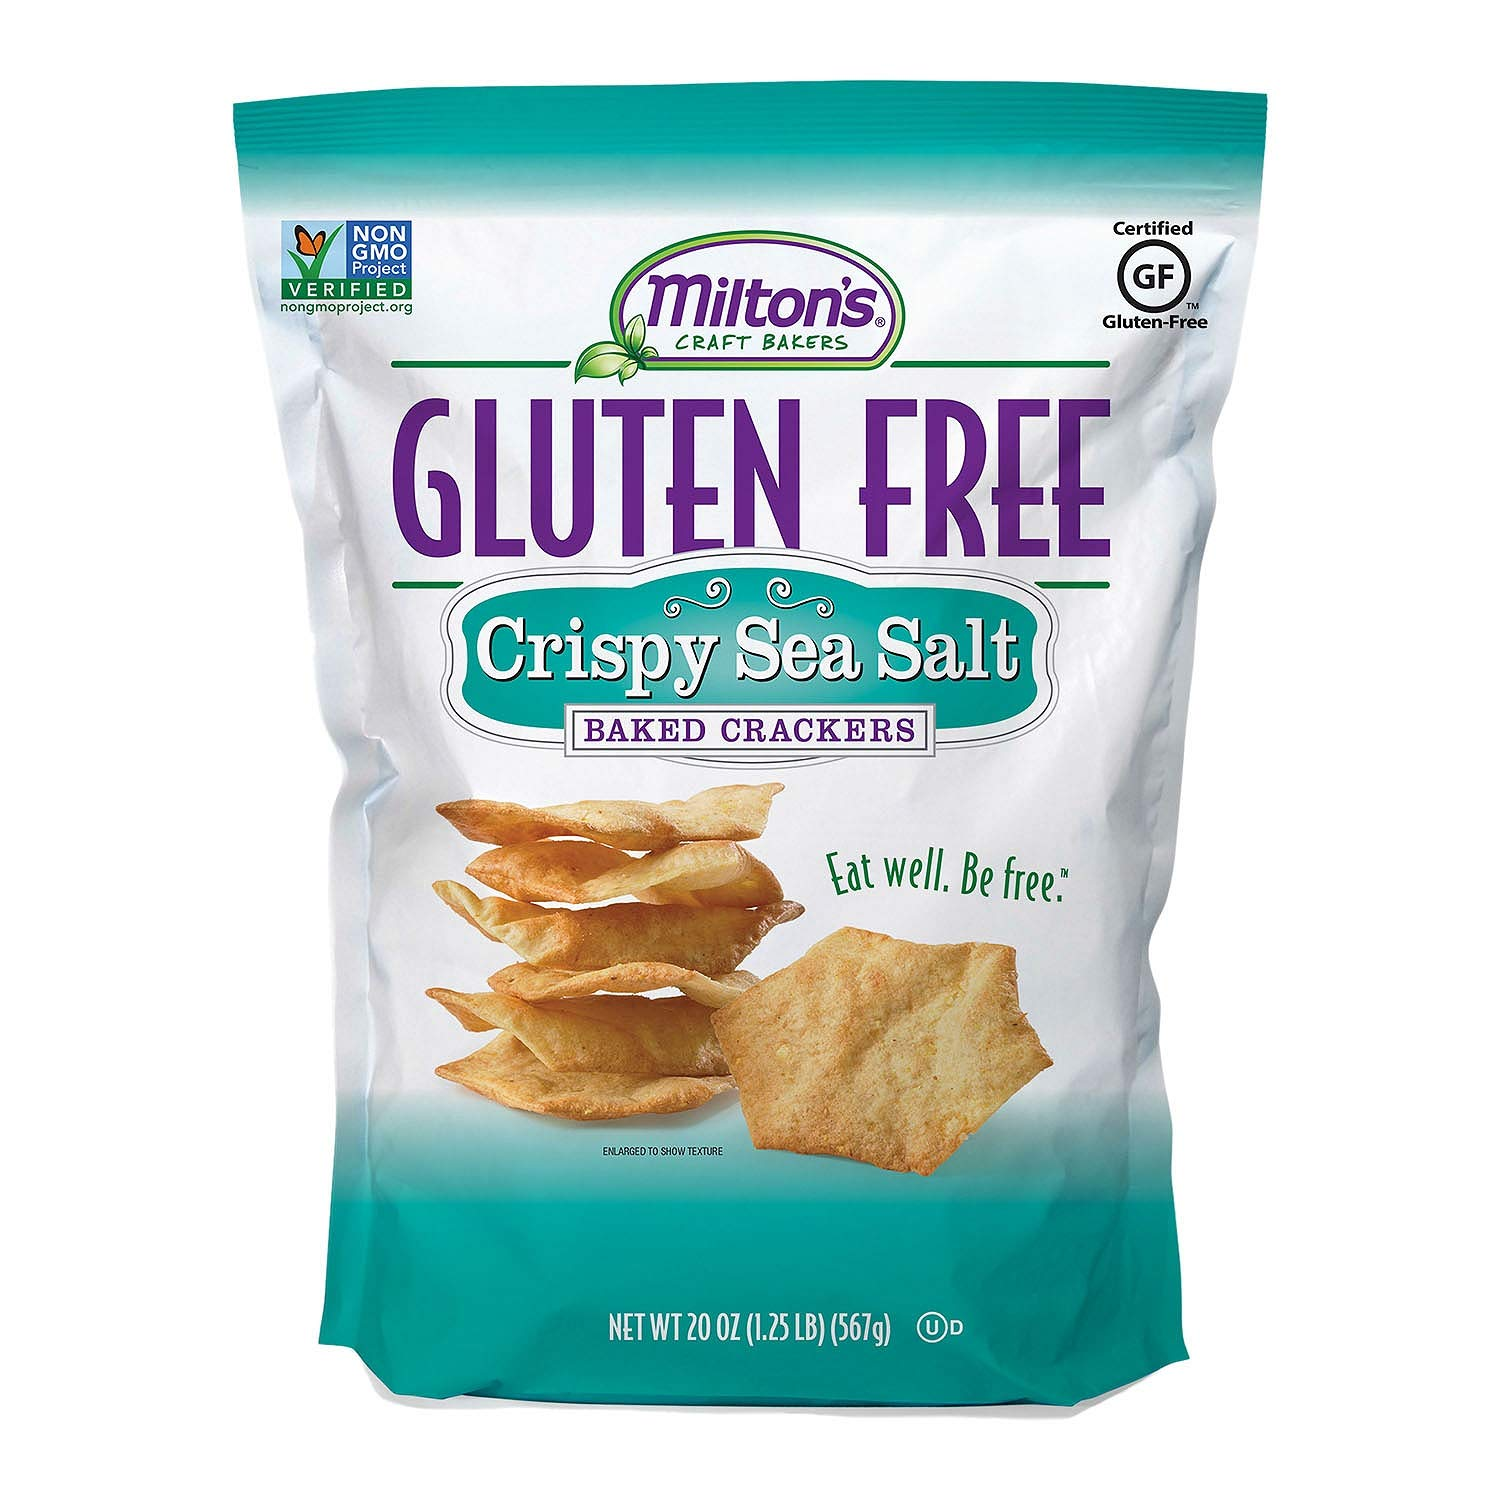 Milton's Gluten-Free Crispy Sea Salt Crackers 20 oz. (pack of 4) A1 by Store - 383